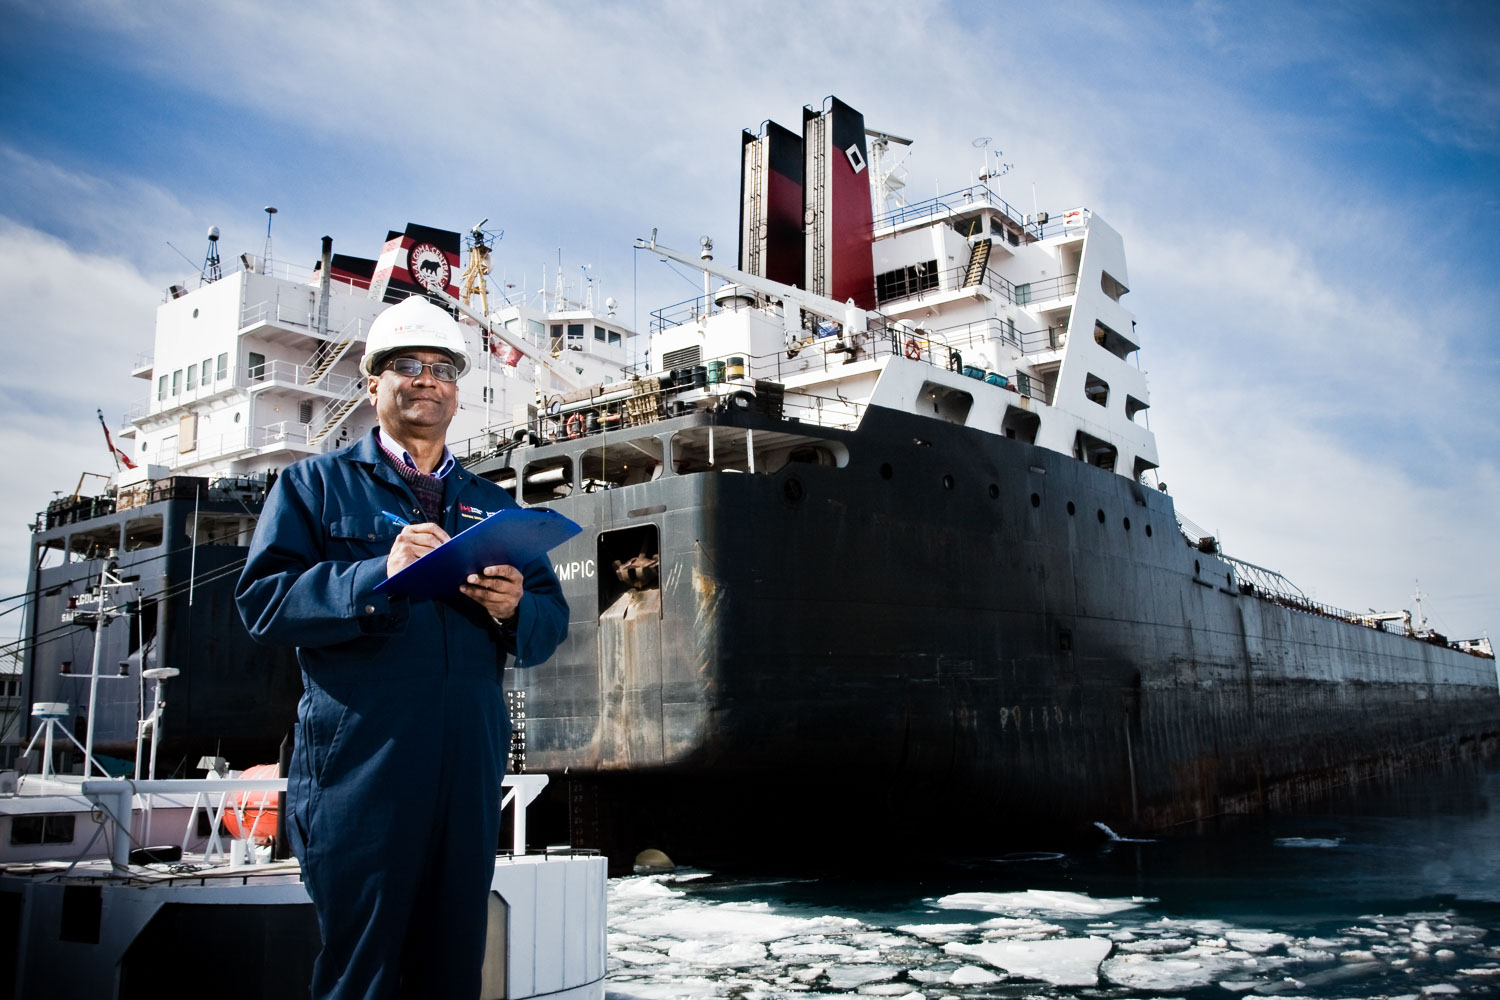 Portrait of a worker in front of a ship